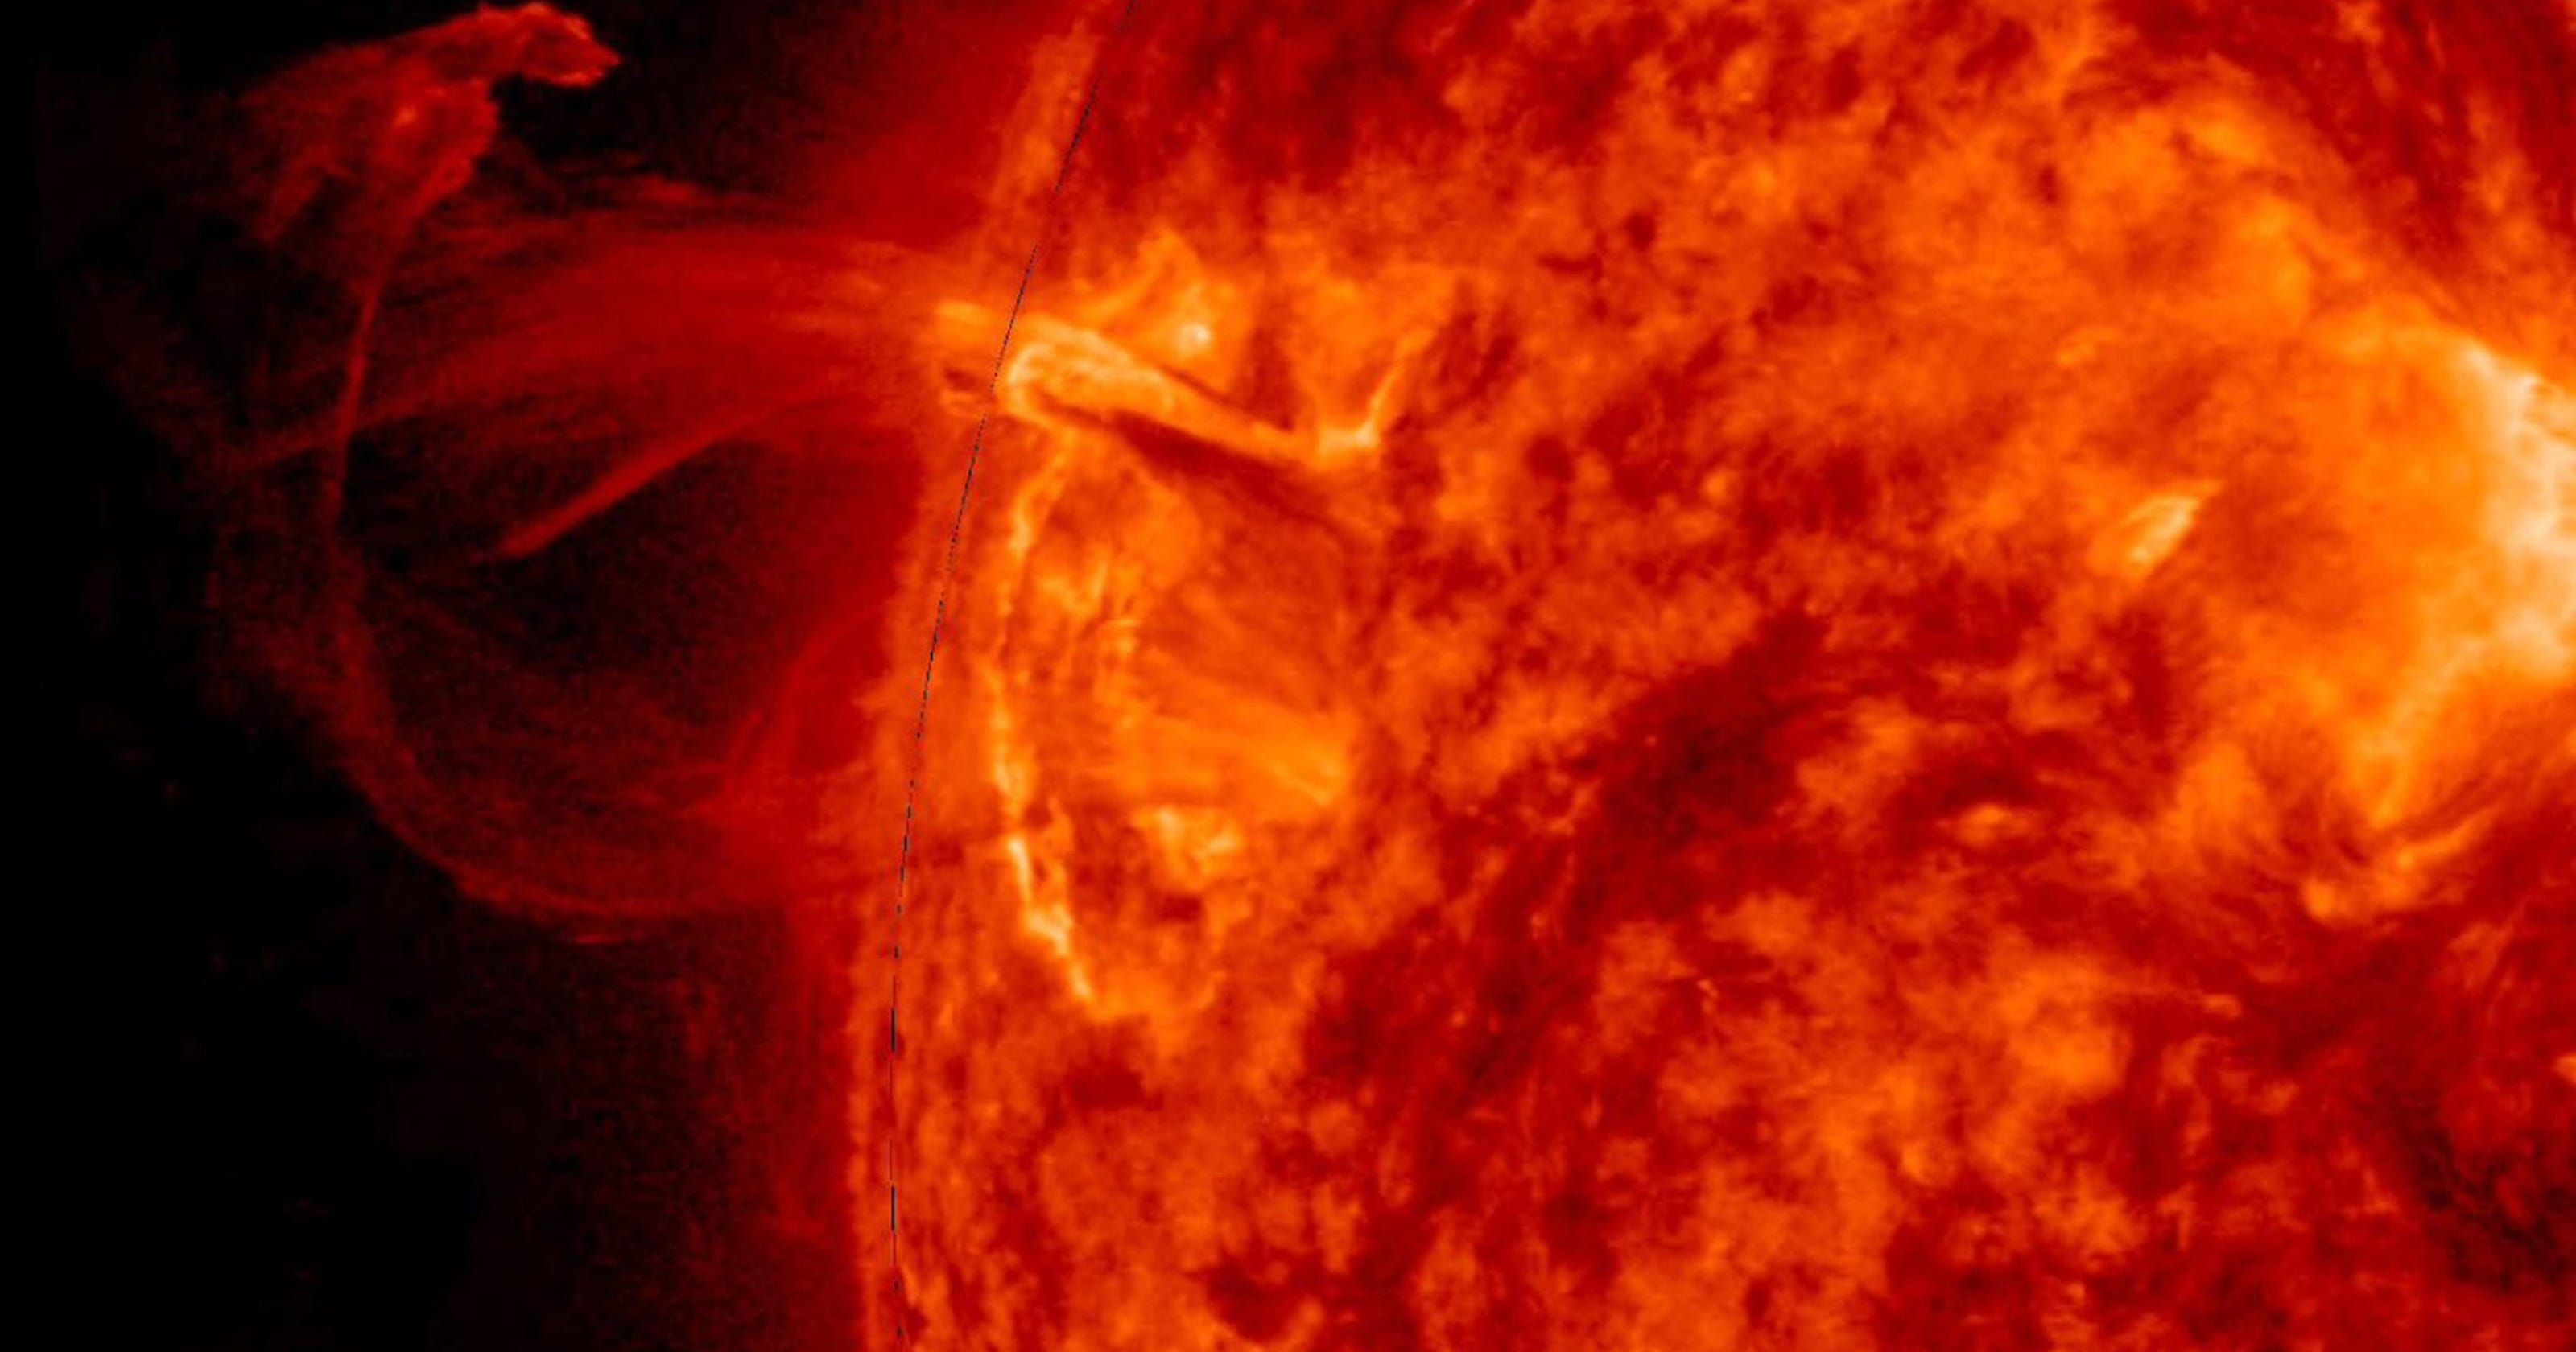 Solar storms, Northern Lights: Powerful one hit Earth 2,700